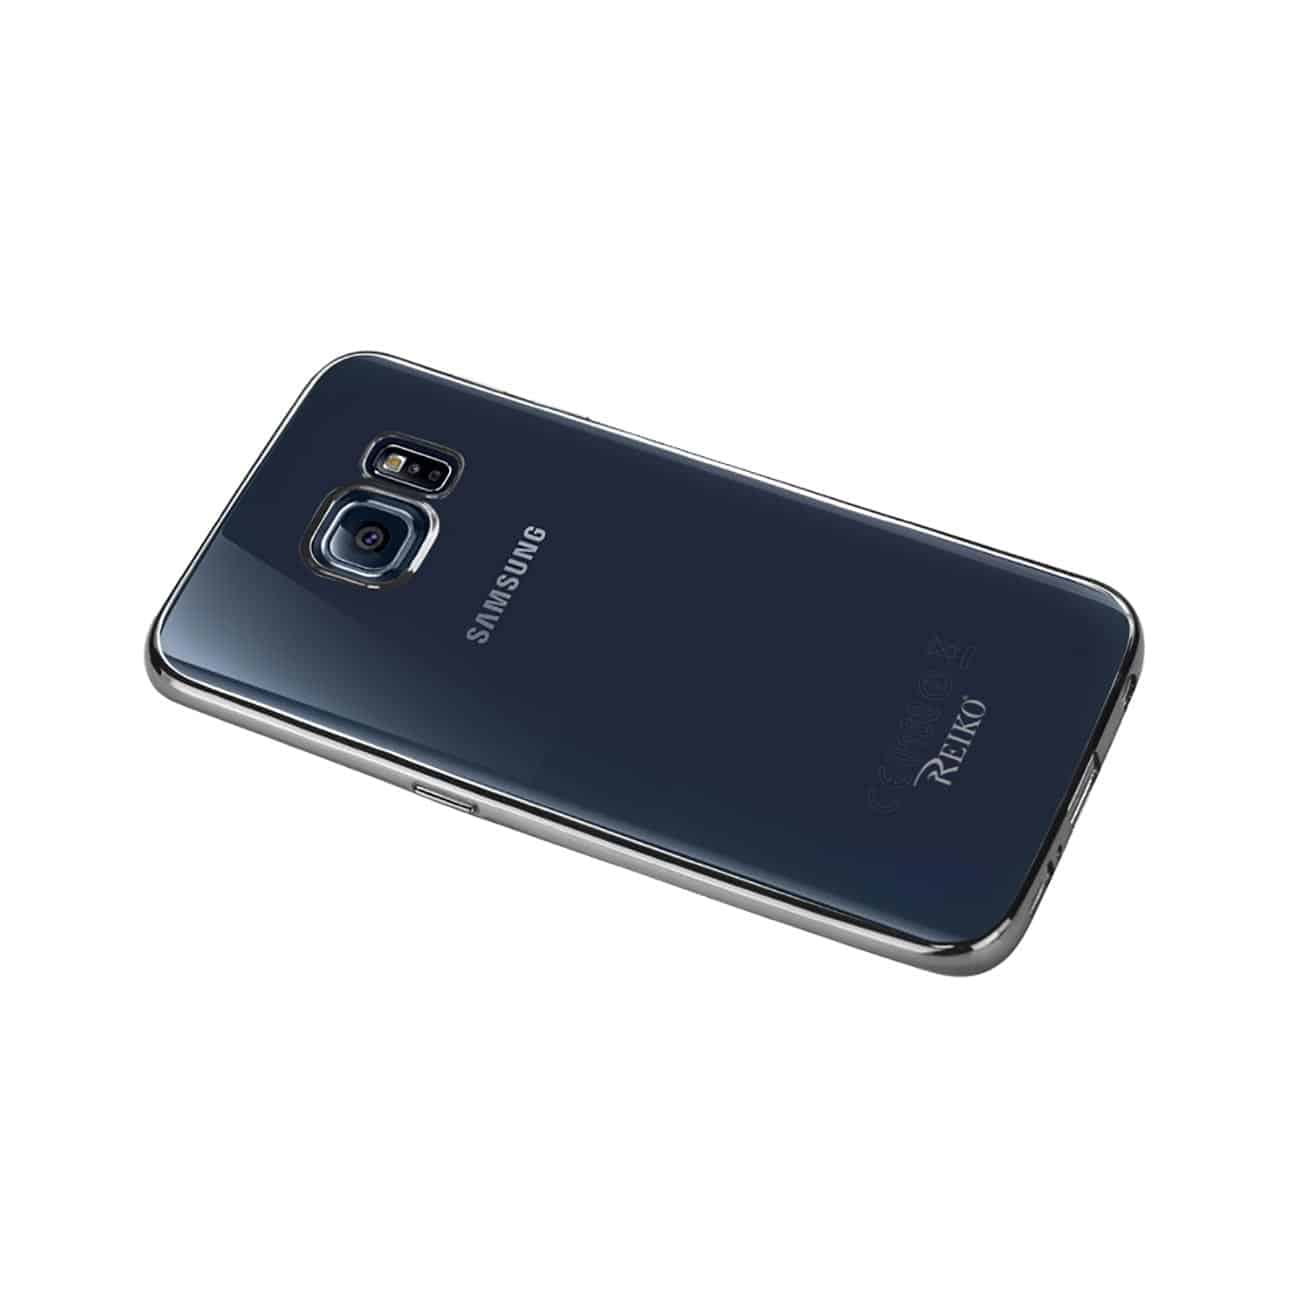 SAMSUNG GALAXY S6 EDGE PLUS FRAME CASE IN SHINY SILVER